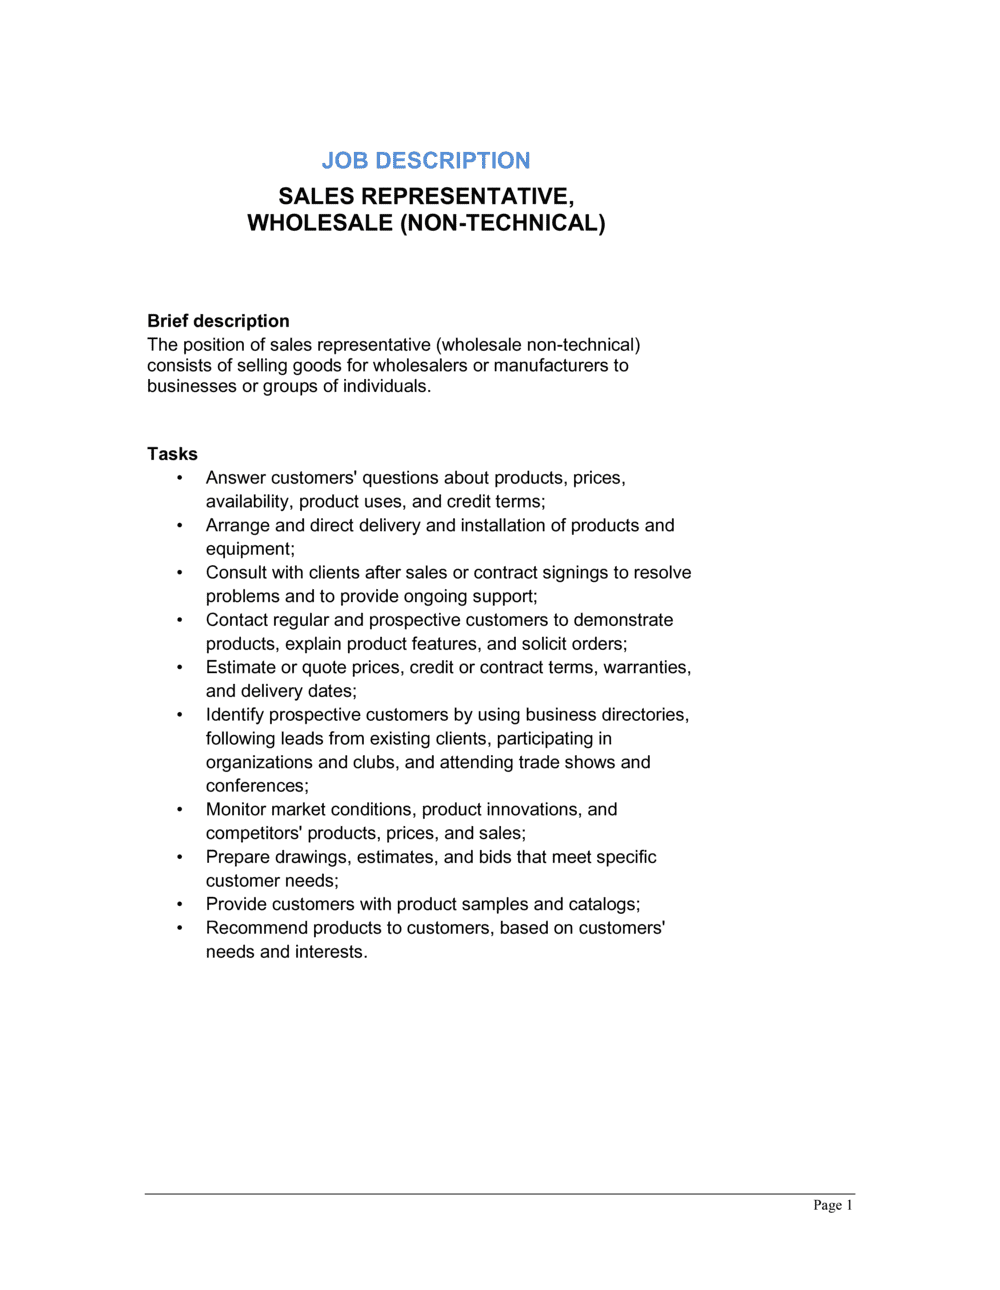 Business-in-a-Box's Sales Representative Wholesale (Non-technical) Job Description Template